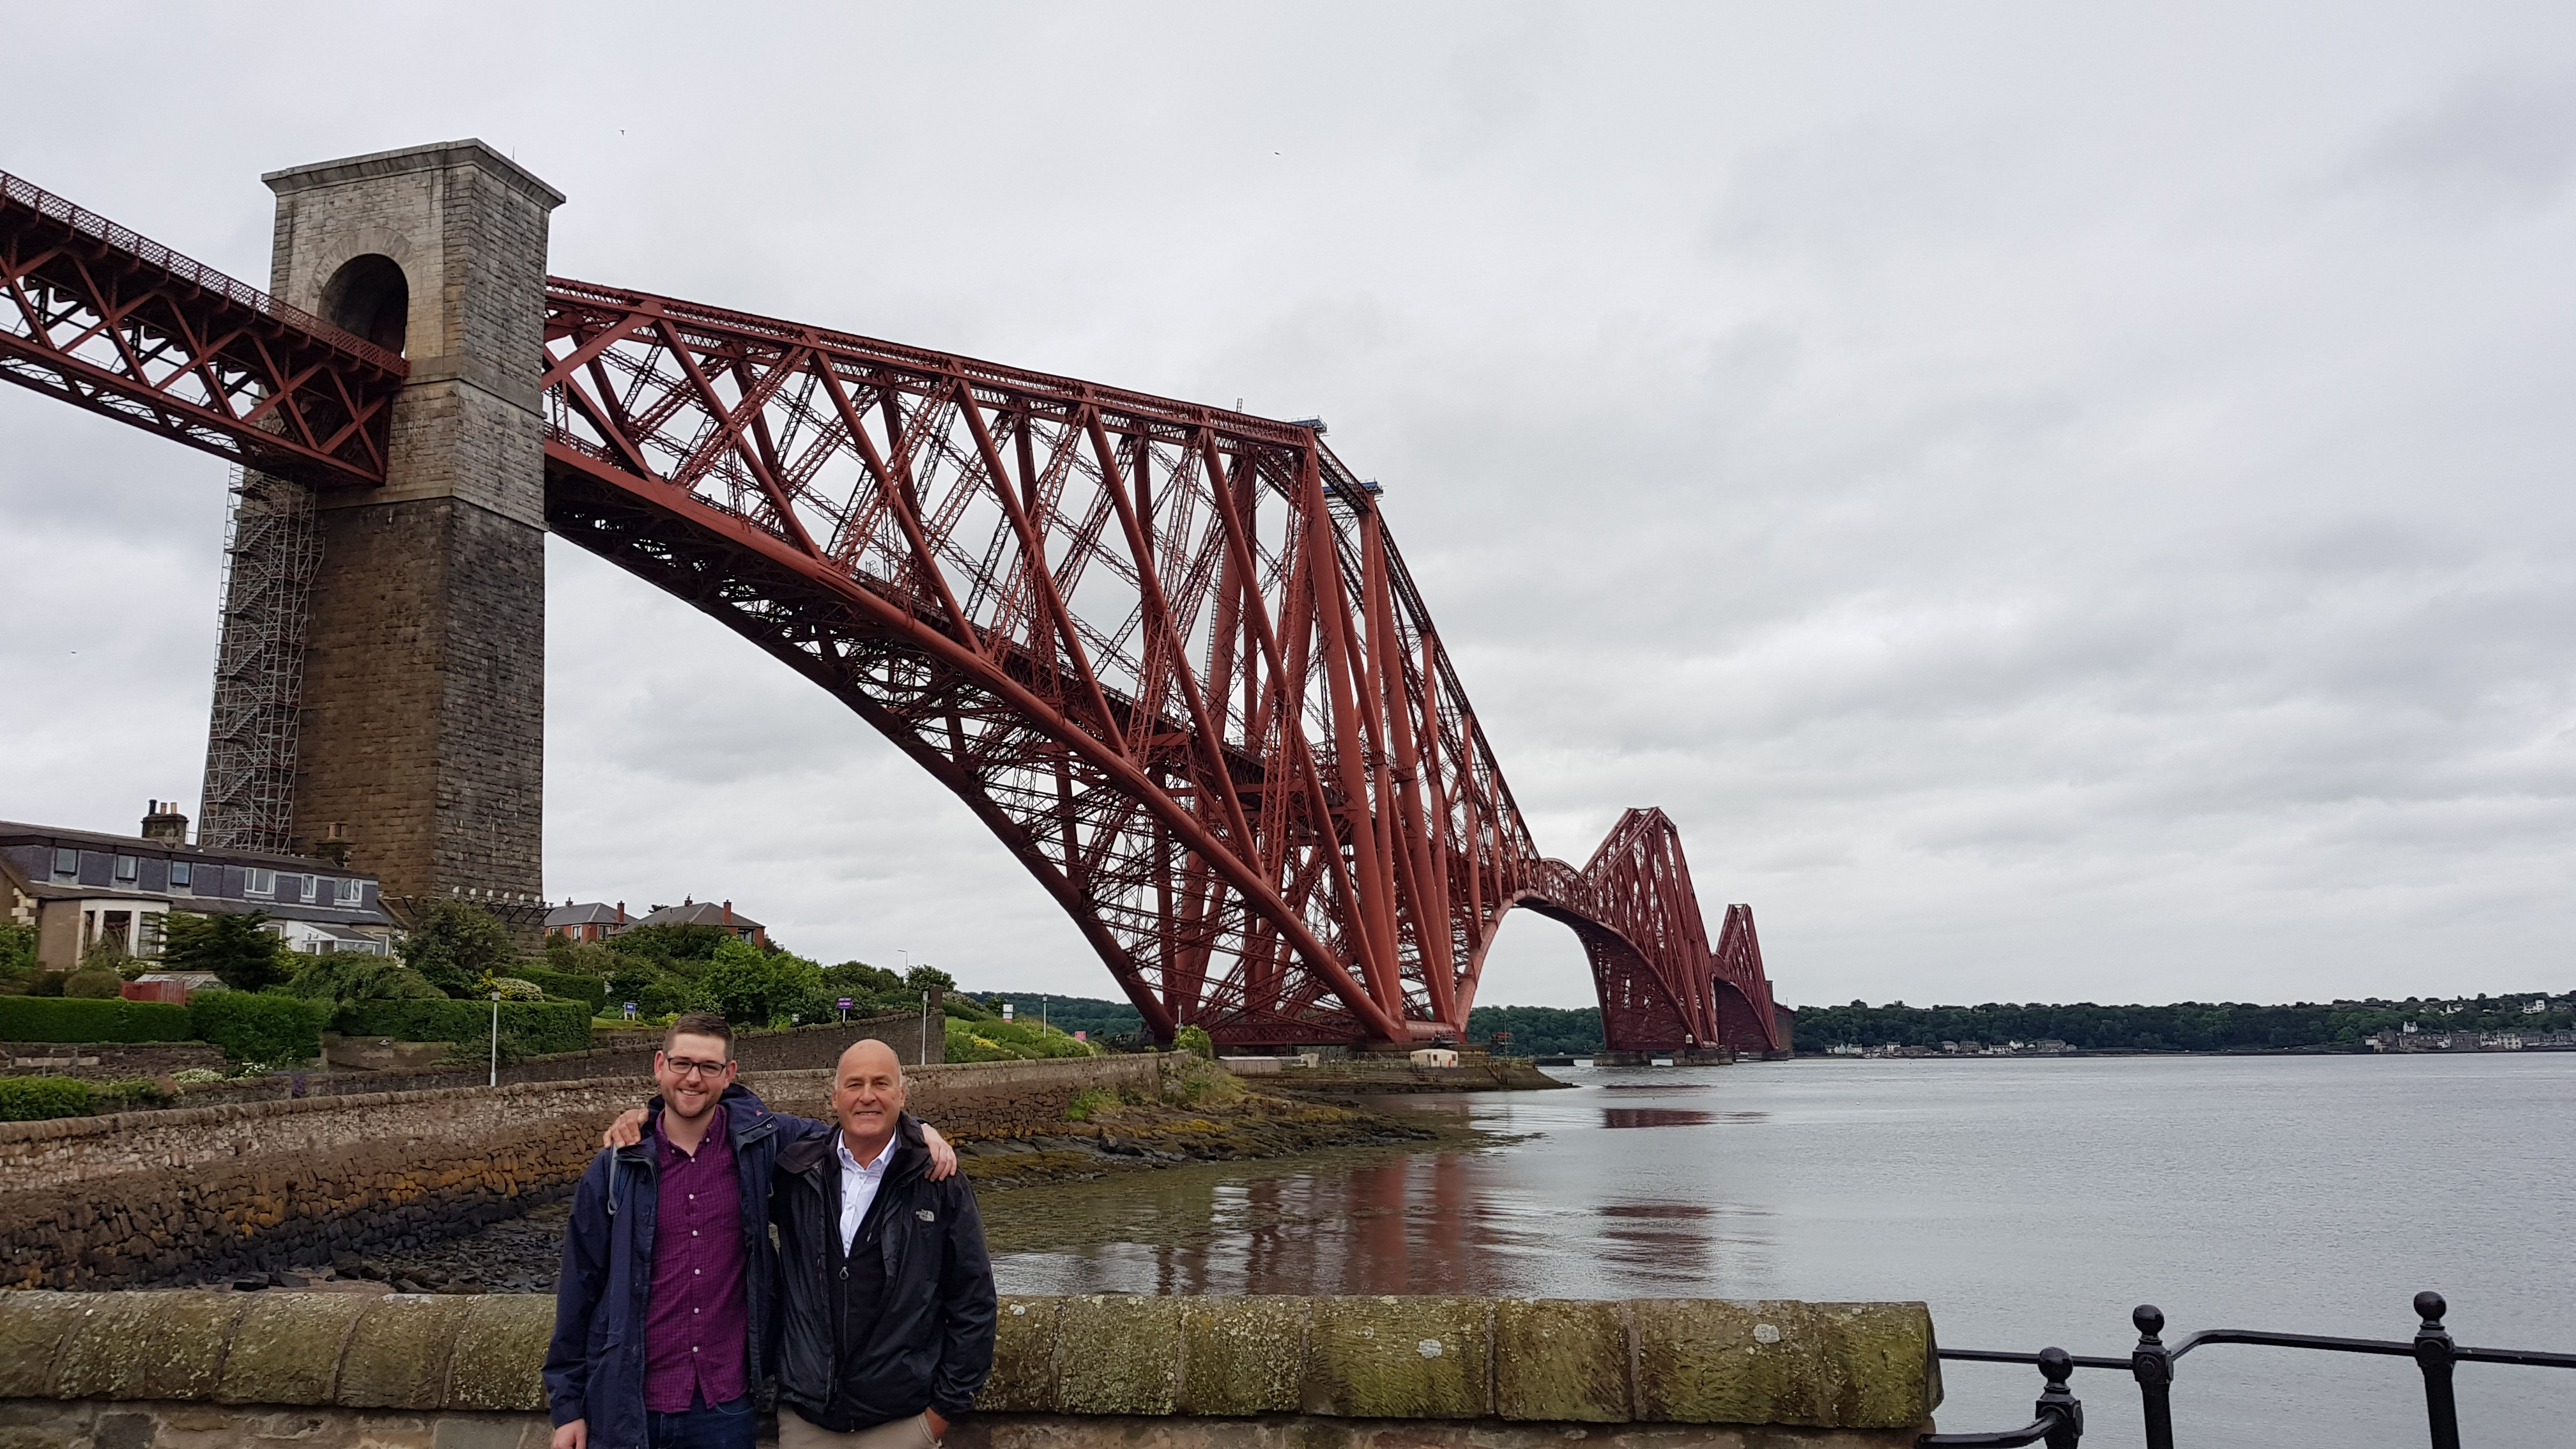 Francis Taylor and Charlie Waite at the Forth Bridge, Scotland